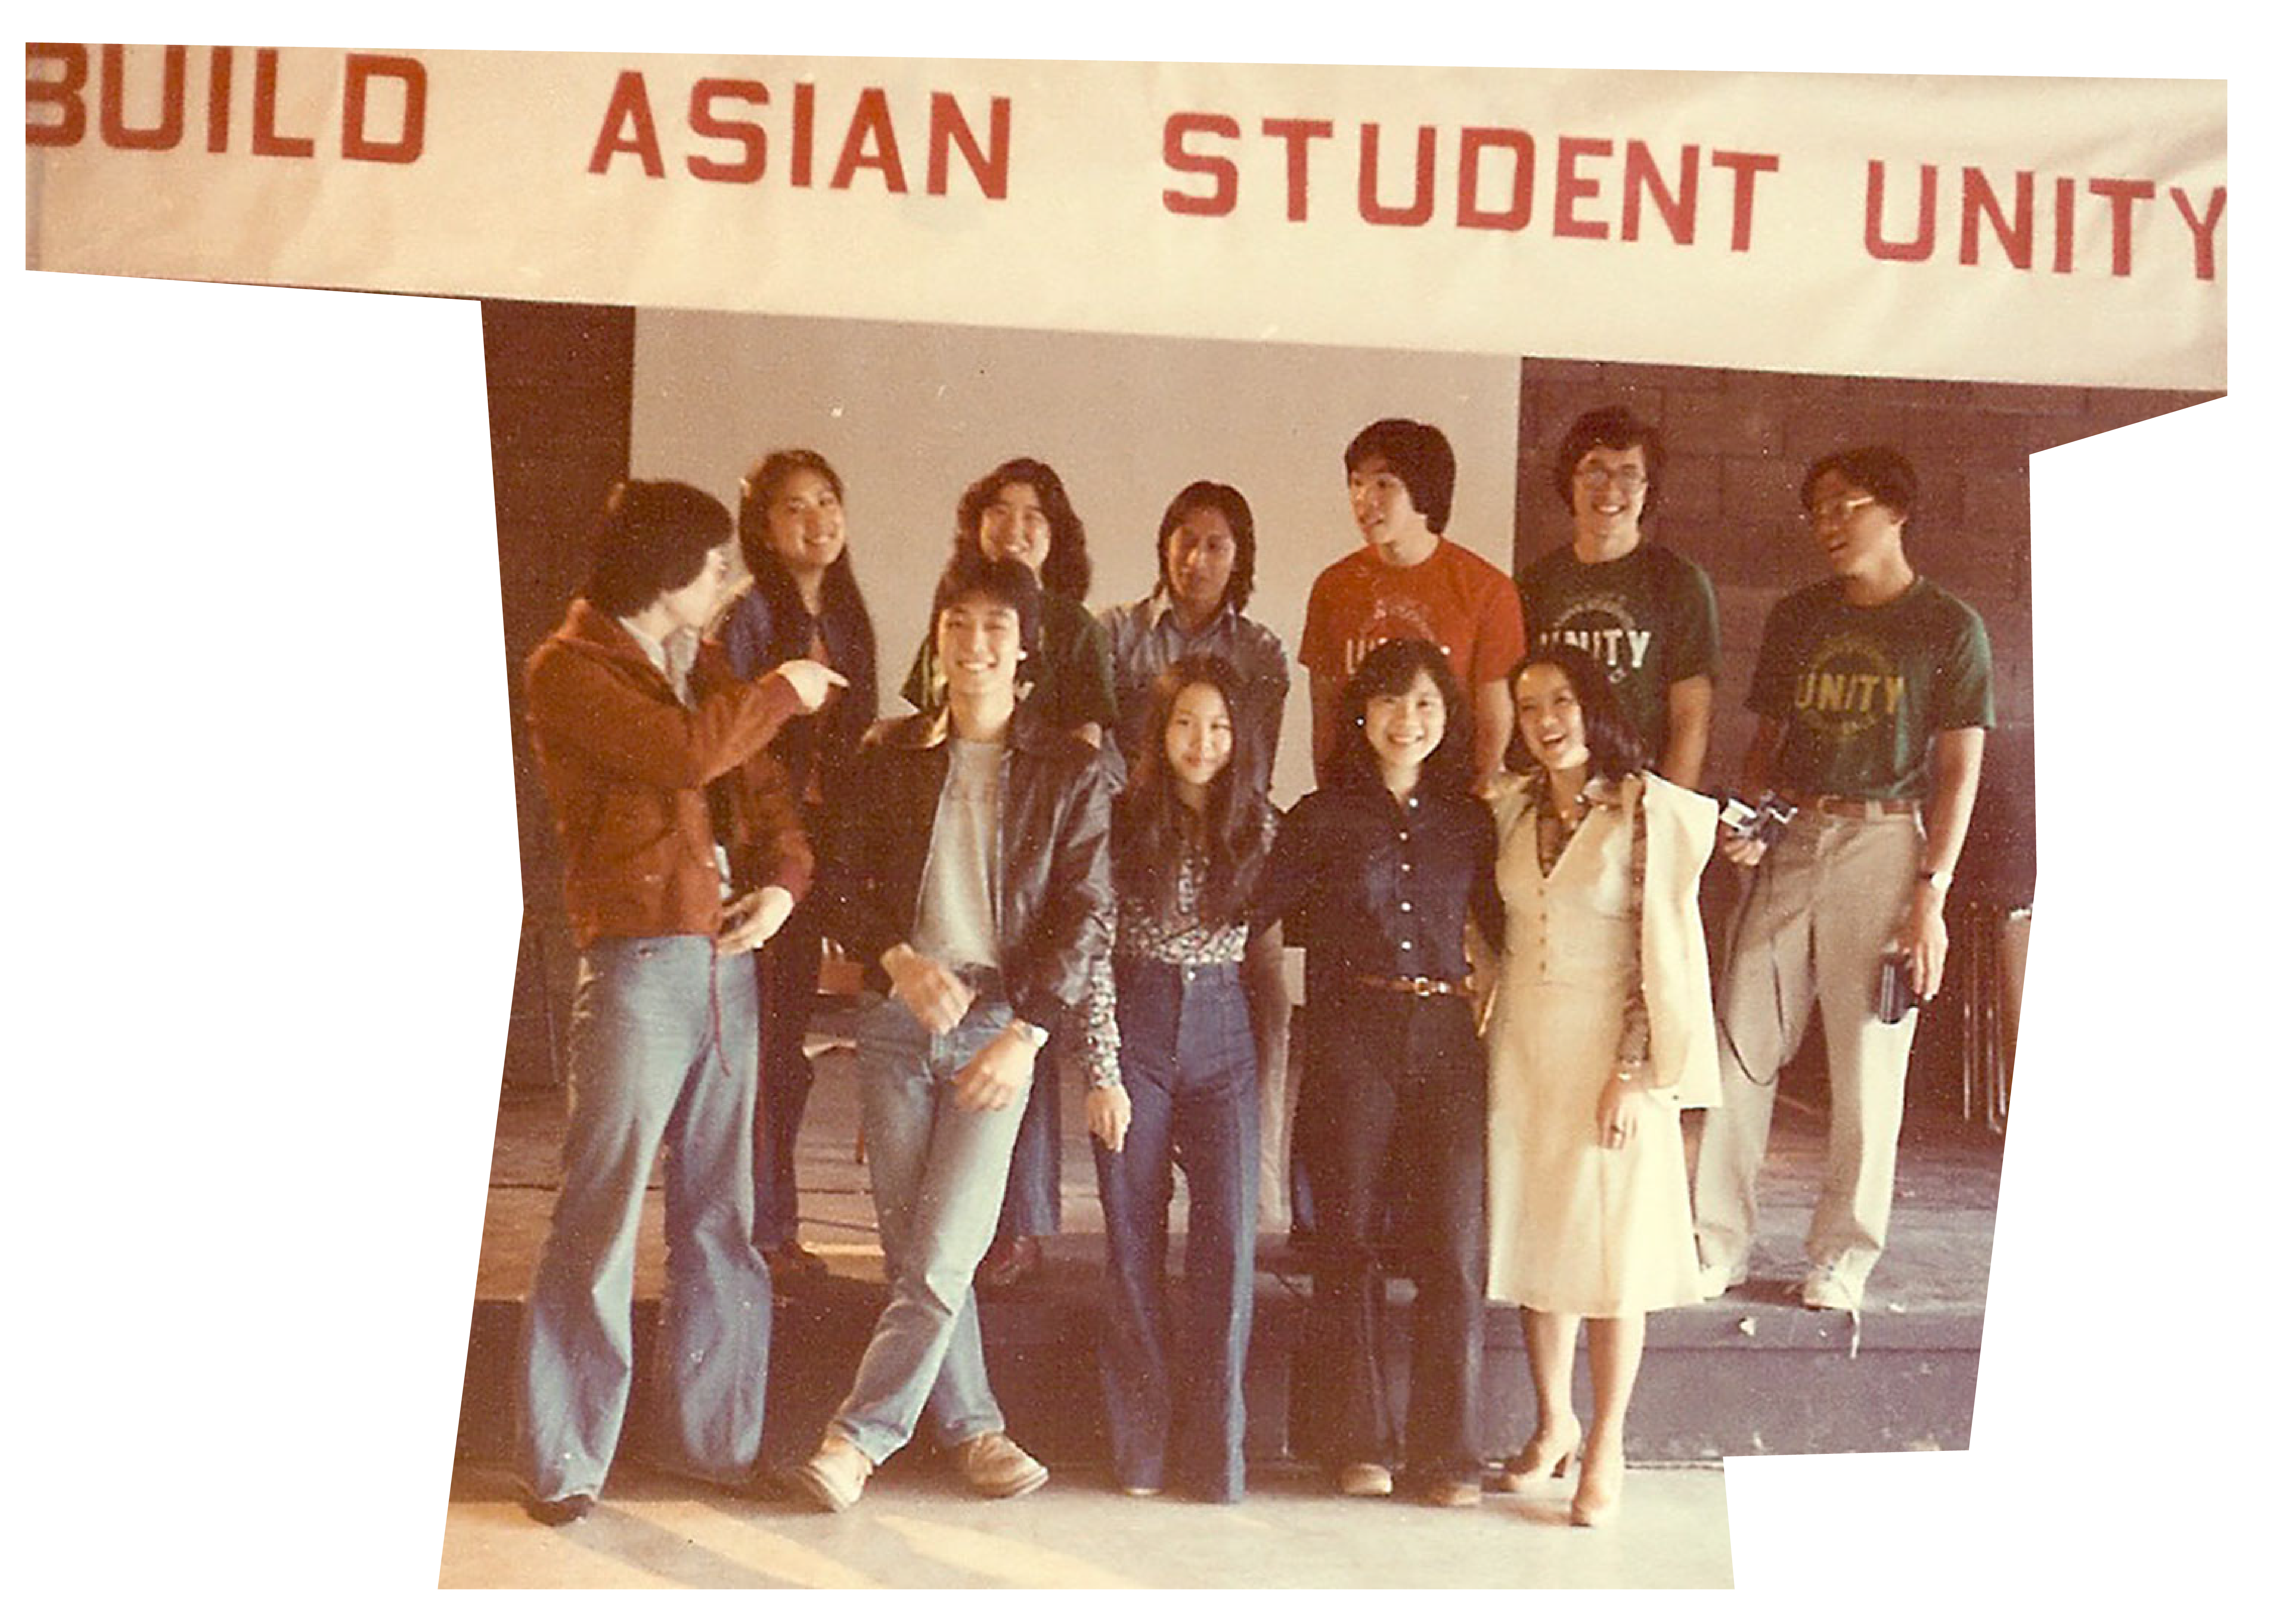 Group posing at a conference for Asian students in 1978.